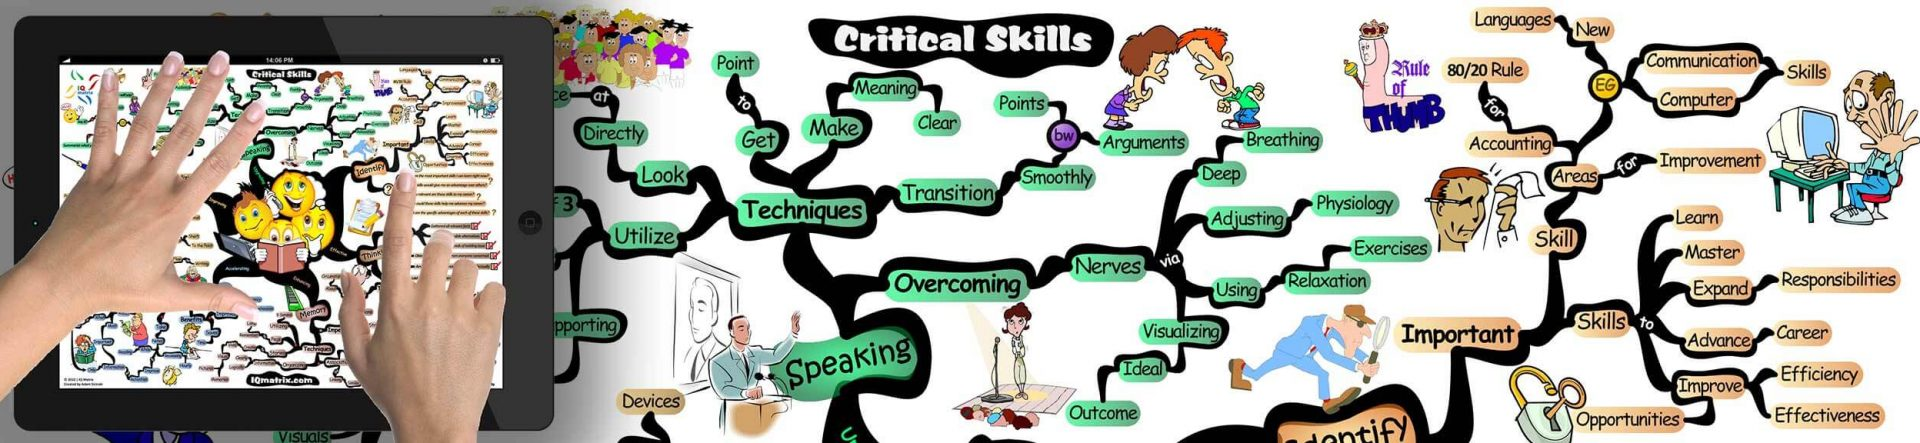 Critical Career Skills